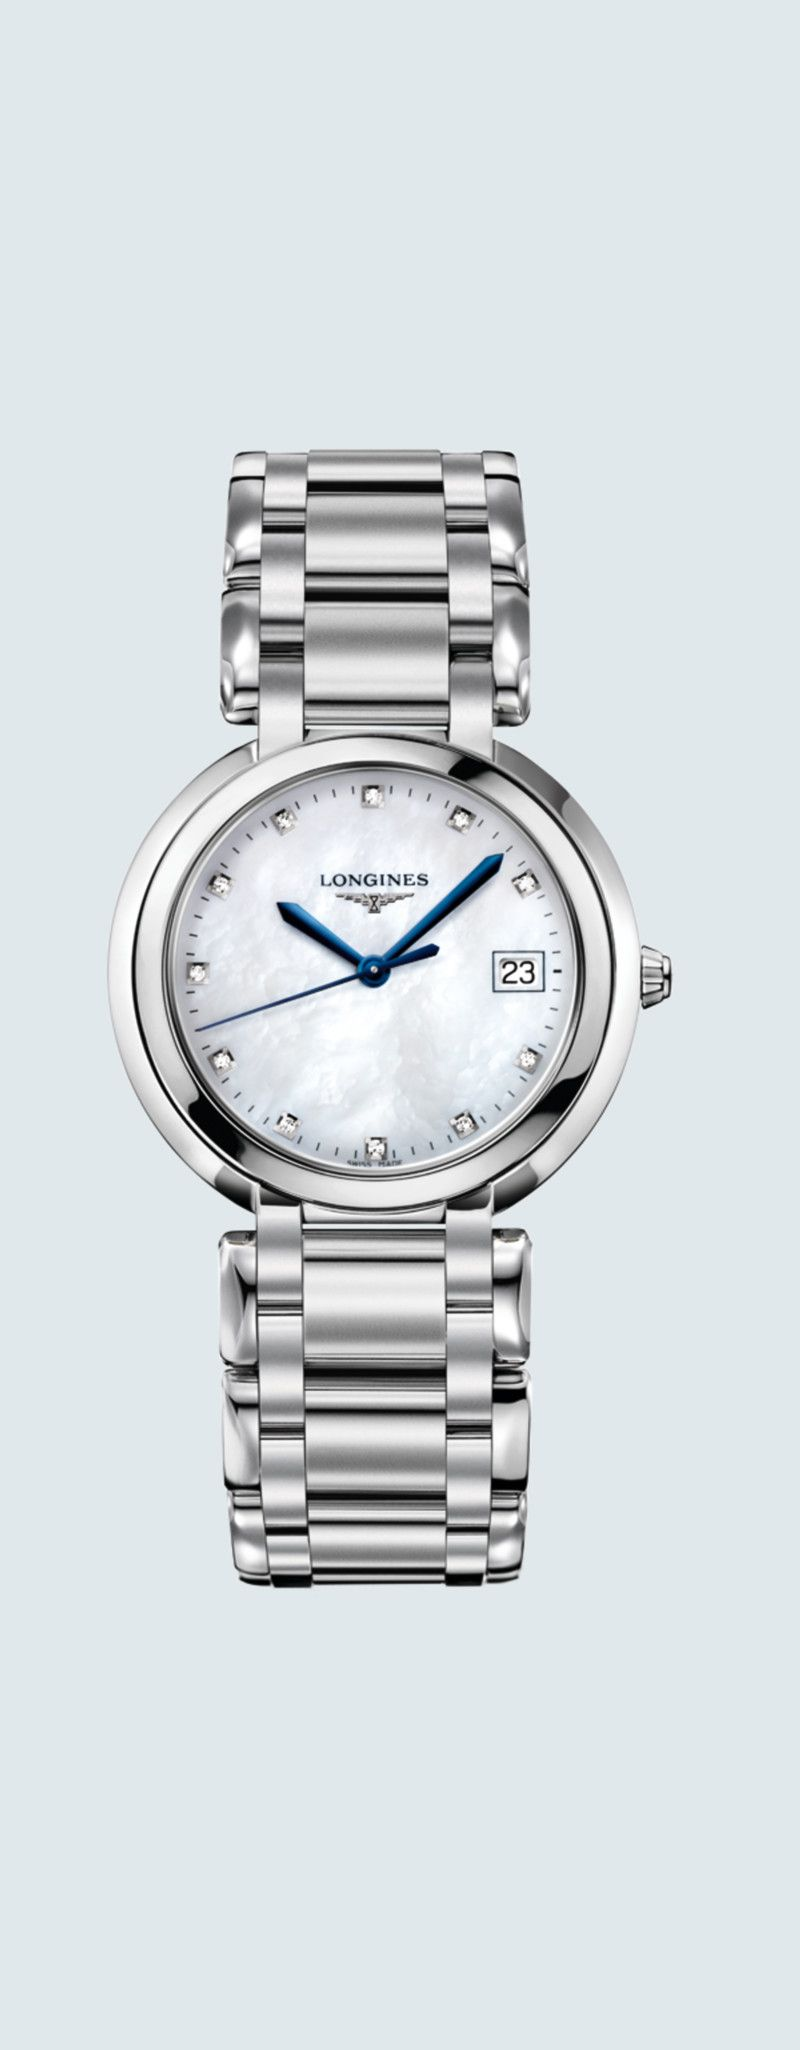 34.00 mm Acciaio inossidabile case with Madreperla bianca dial and Acciaio inossidabile strap - cas